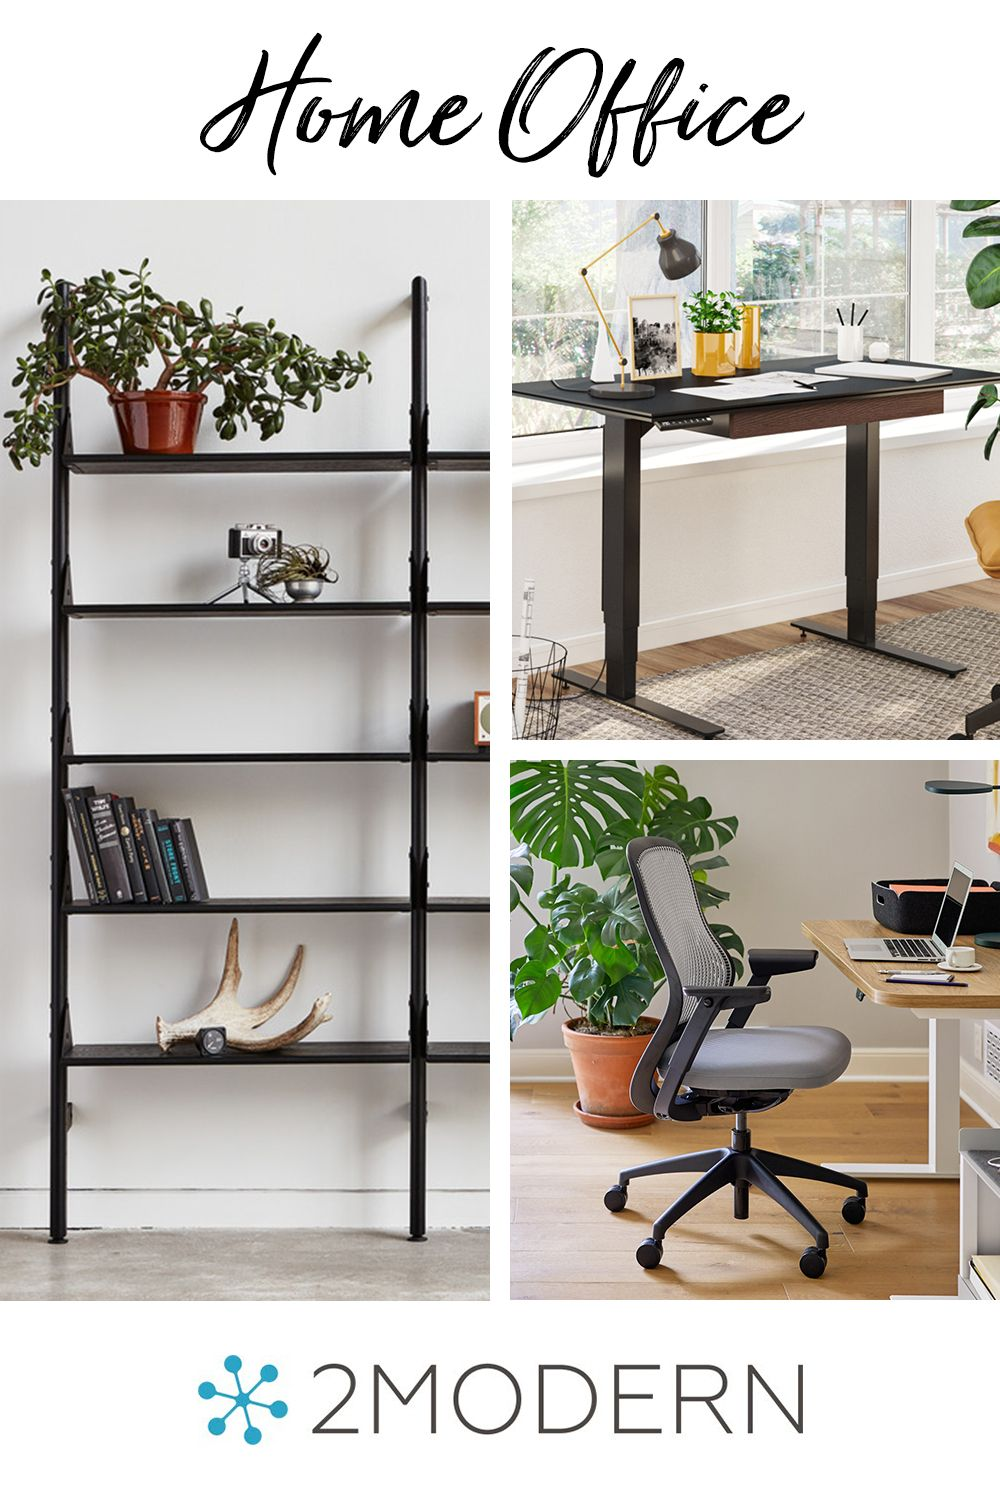 Home Office Refresh In 2020 Office Furniture Modern Modern Home Offices Modern Office Design